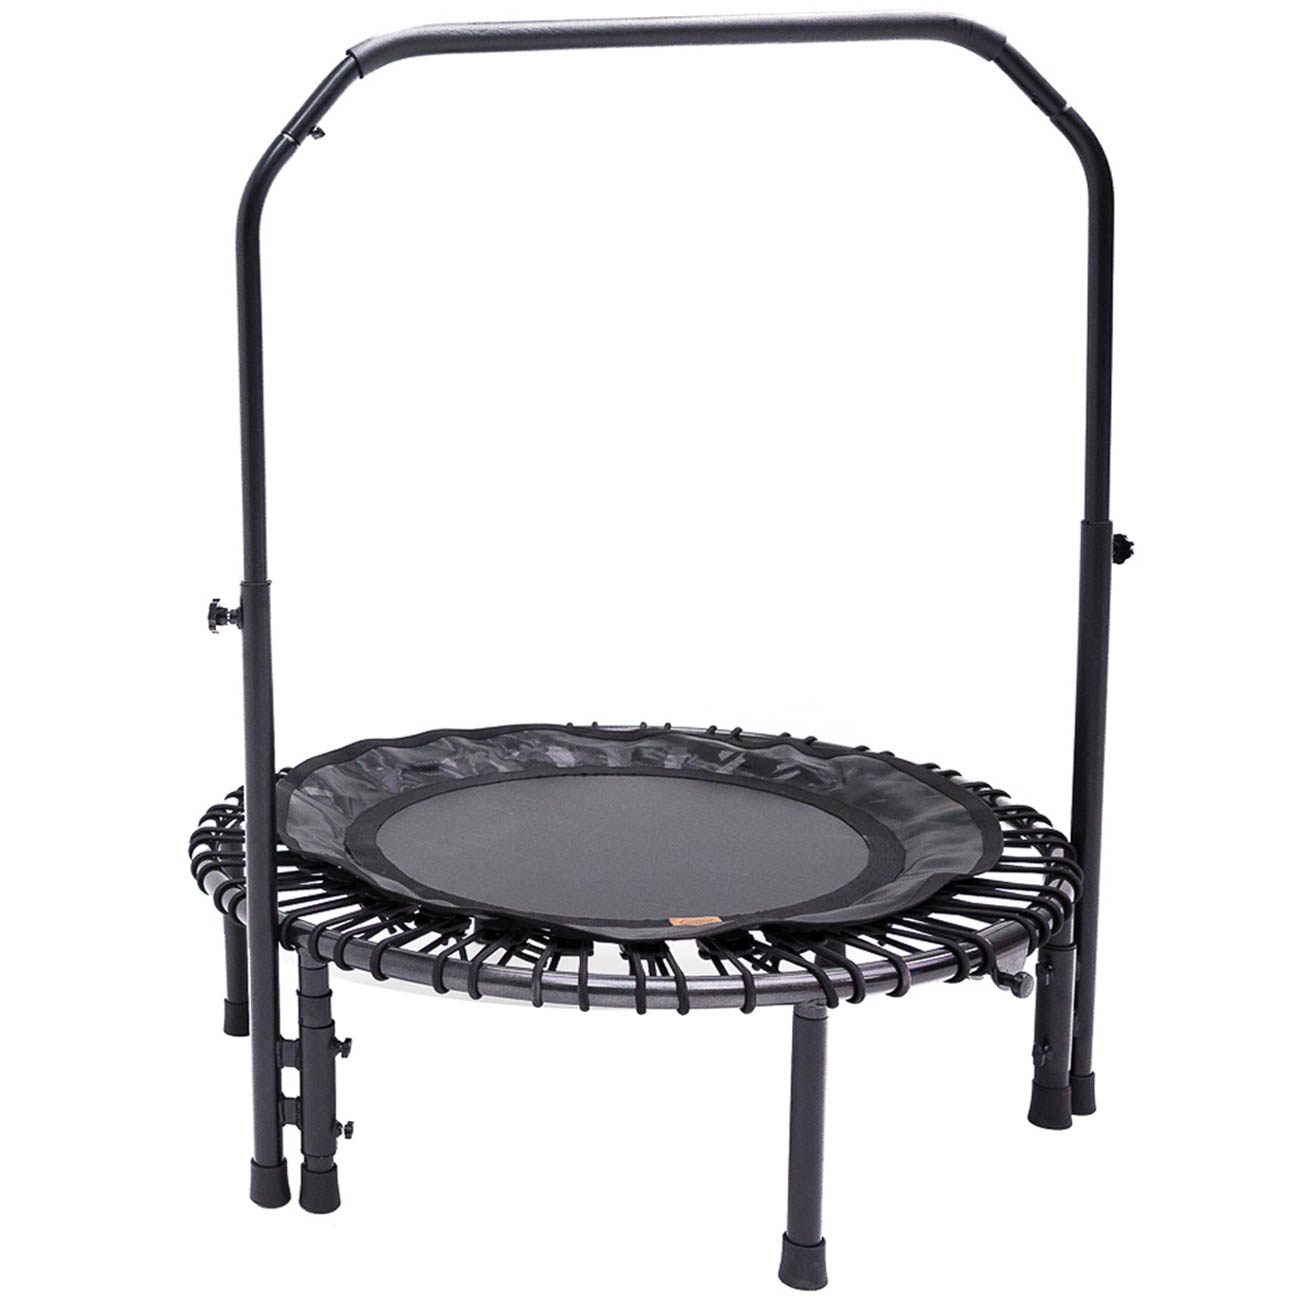 SkyBound Nimbus Folding Trampoline with Handlebar and Carrying Case